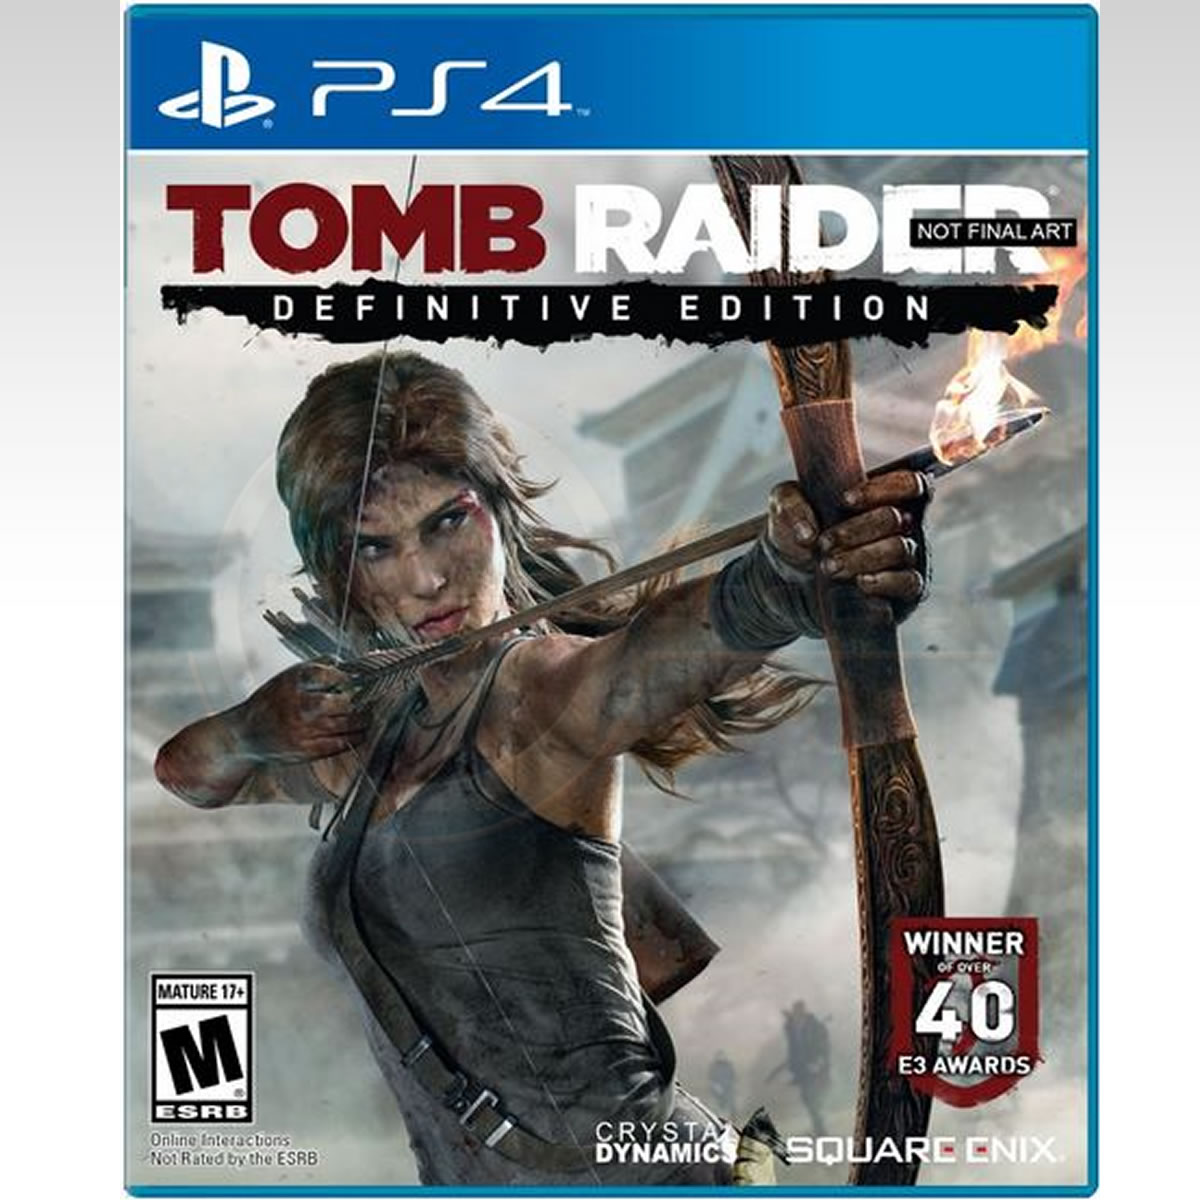 Tomb Raider Definitive Edition For Xbox One And Ps4 4k Hd: TOMB RAIDER DEFINITIVE EDITION (PS4)